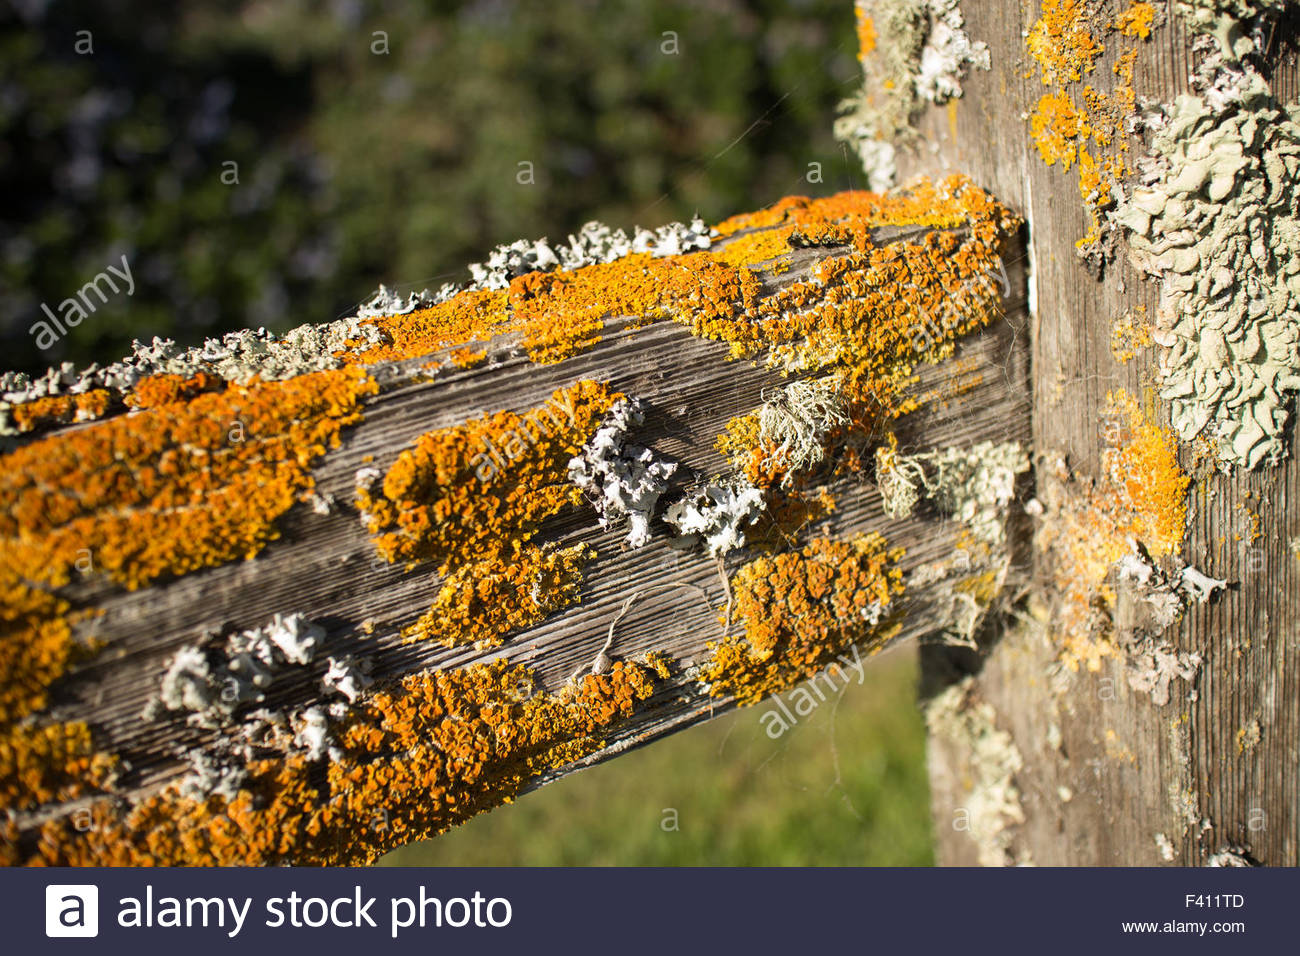 Thick colorful lichens on a wooden fencepost, with horizontal rail seen extending diagonally from the side. - Stock Image